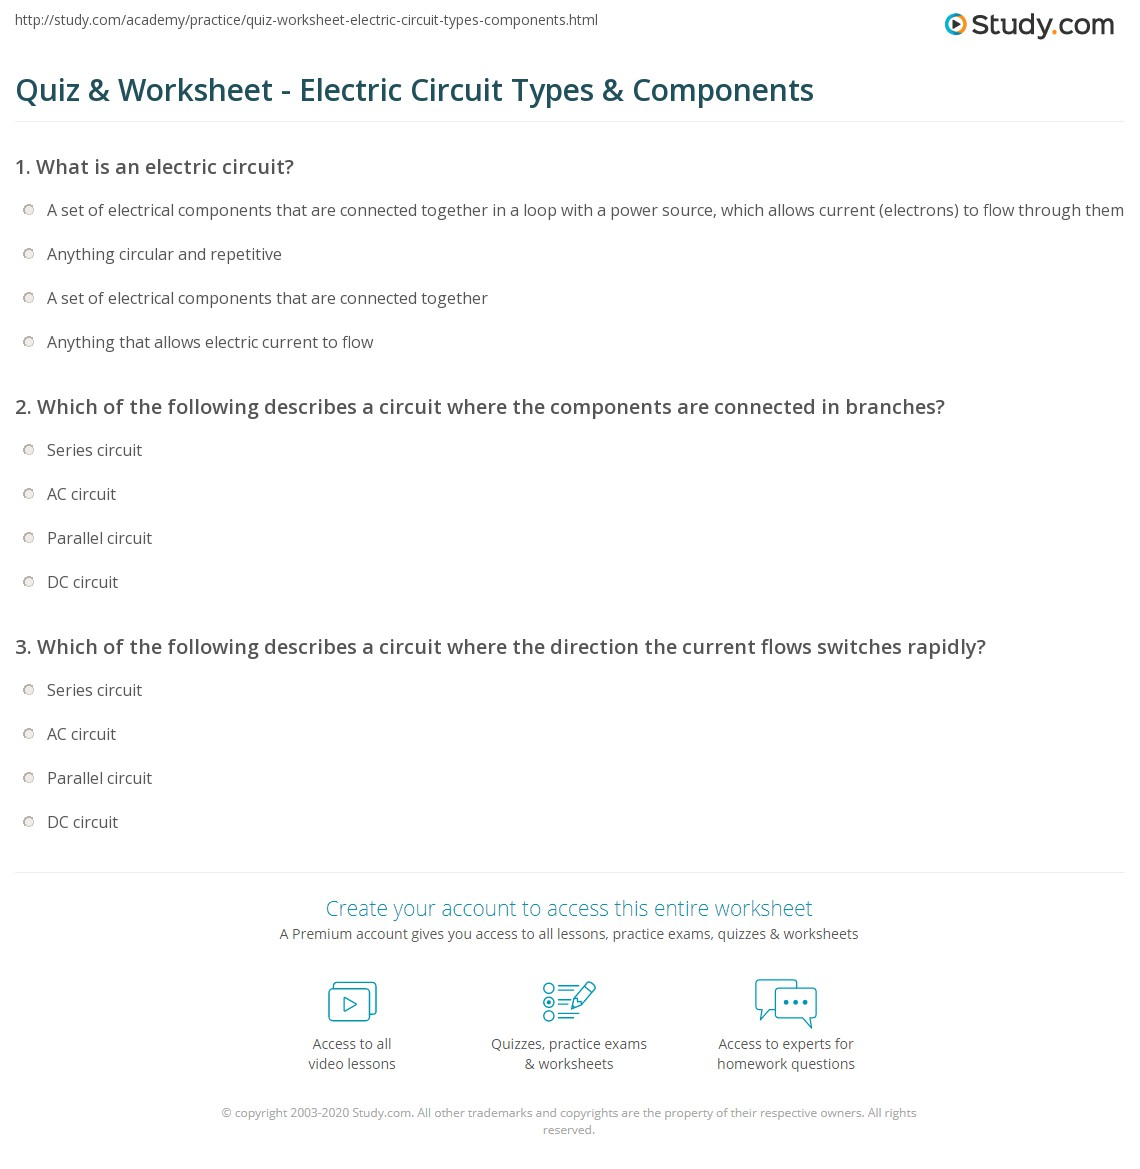 Quiz & Worksheet - Electric Circuit Types & Components | Study.com